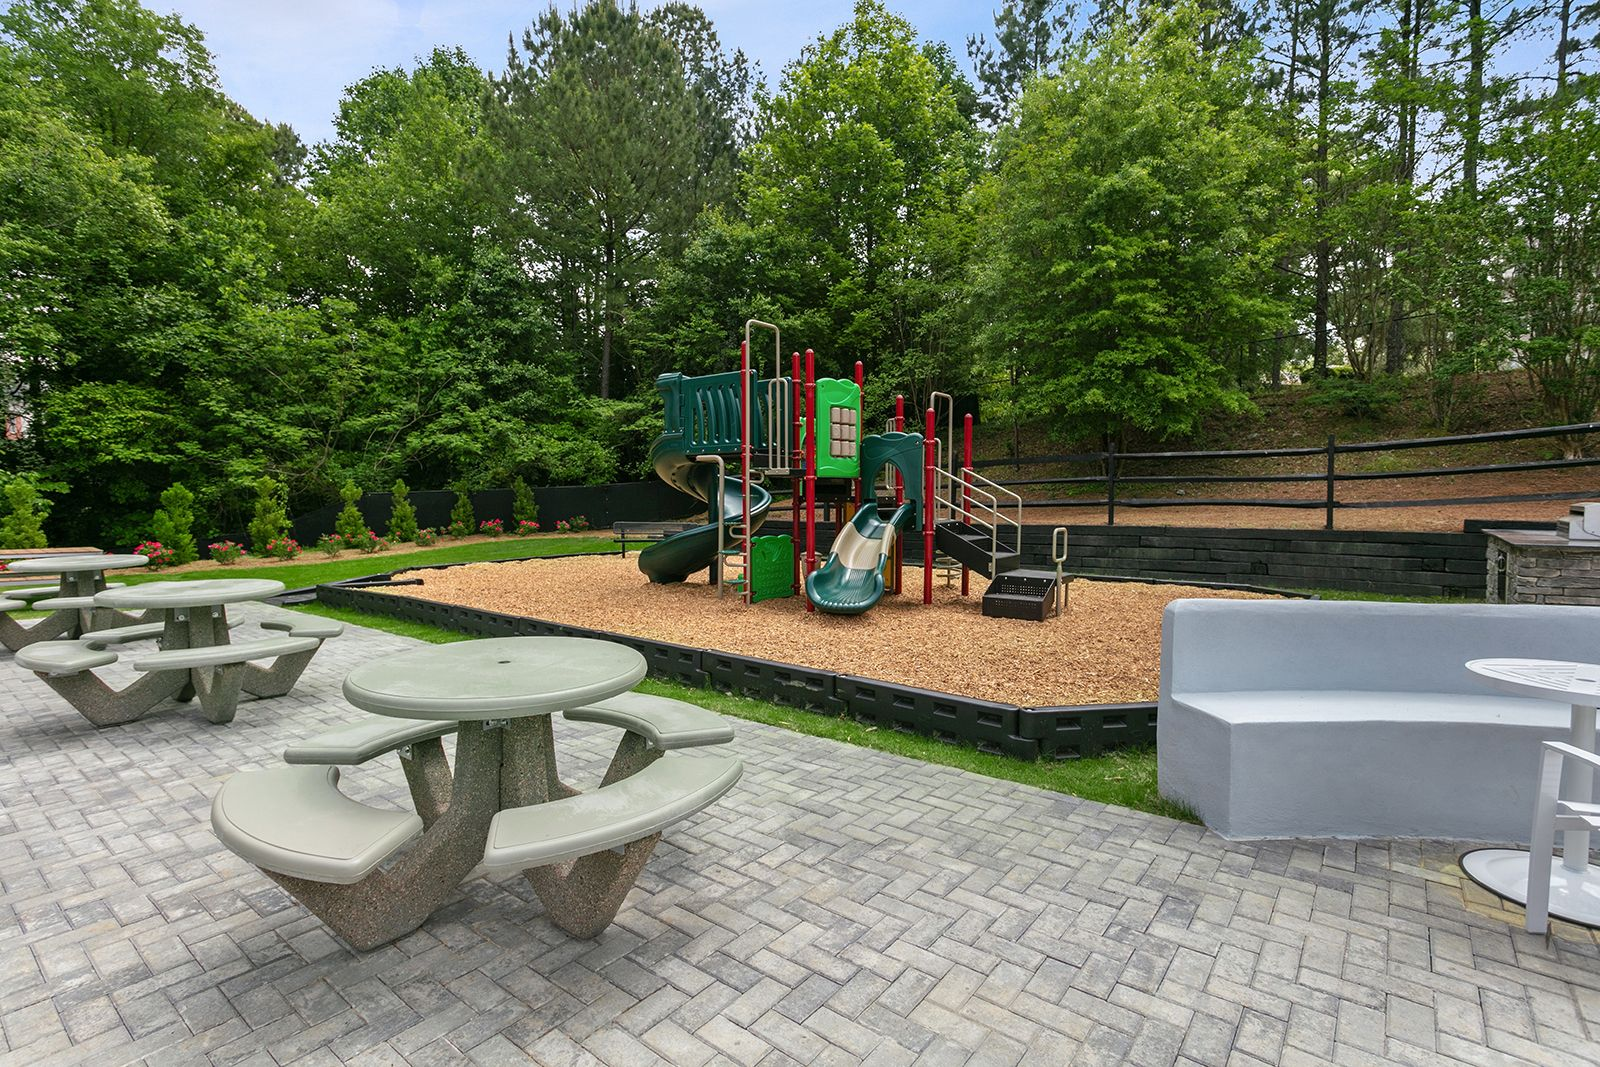 Your Kids Will Have Plenty Of Room To Play On Our Playground Renewsandysprings Iamrenewed Amenities Sandy Spring Luxury Apartments Sandy